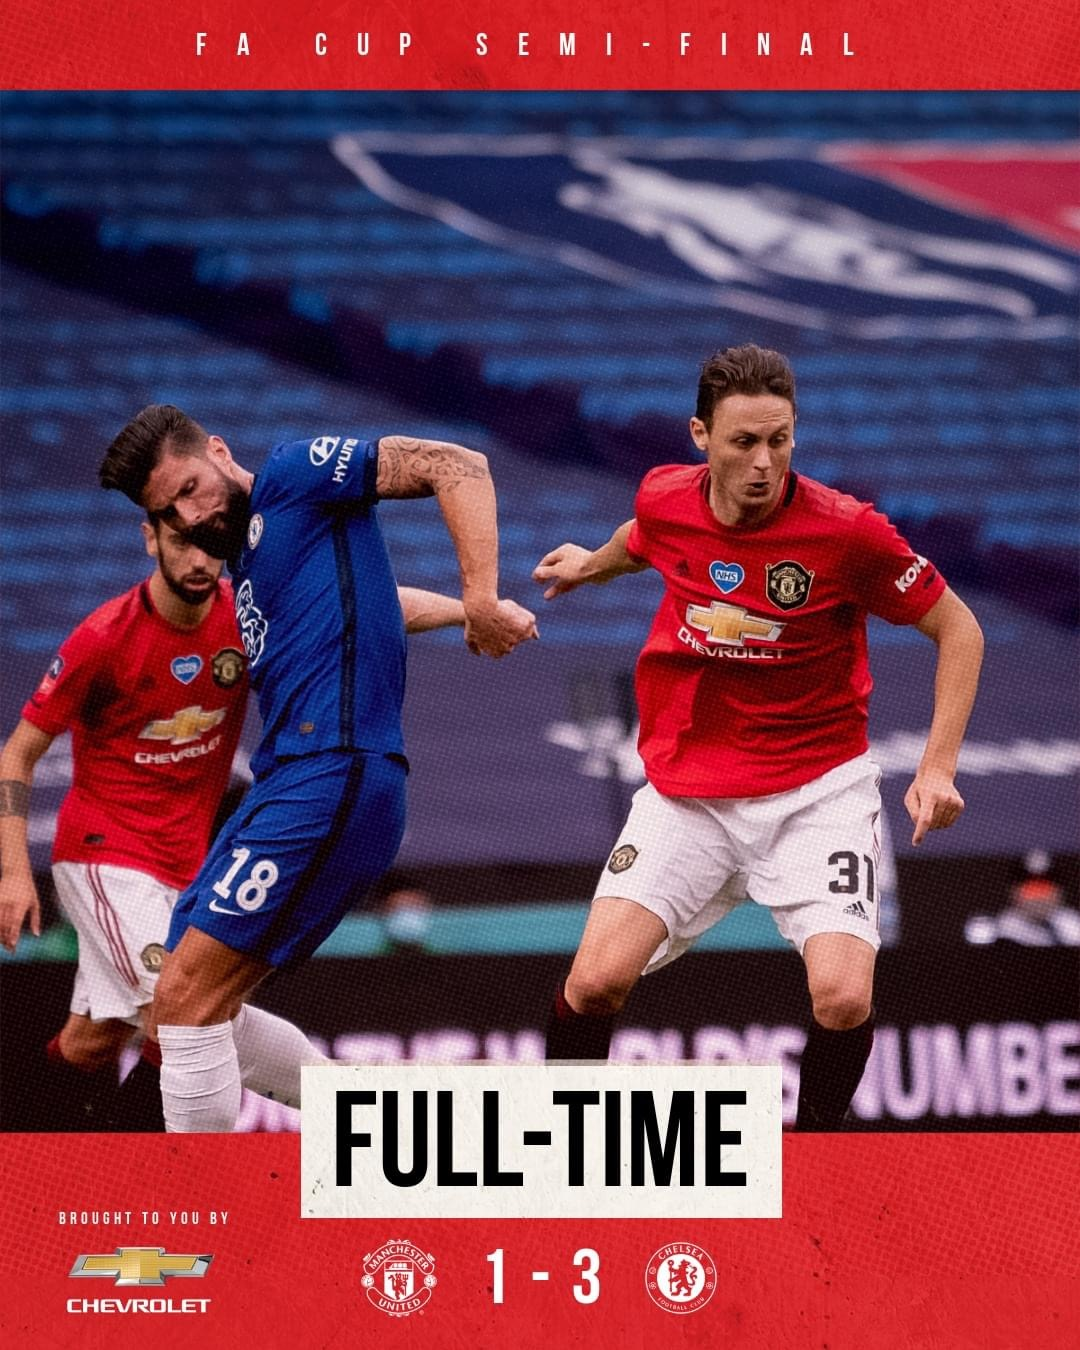 Our FA Cup journey ends at Wembley- Man United